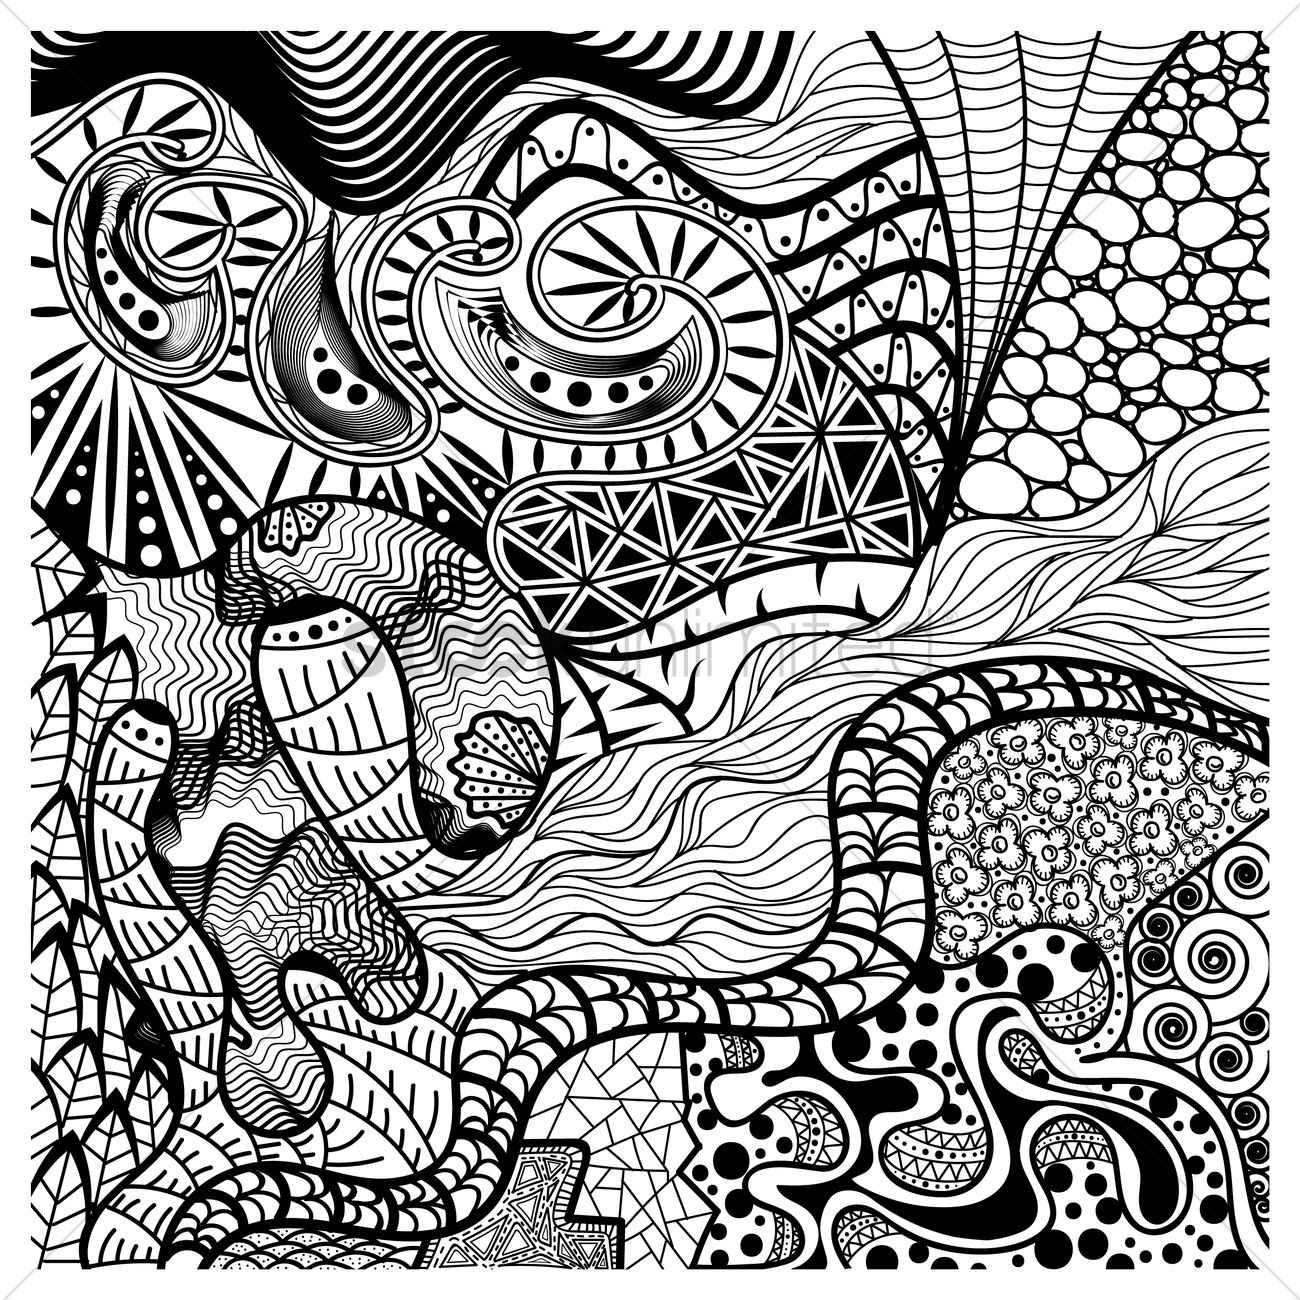 1300x1300 Intricate Abstract Design Vector Image